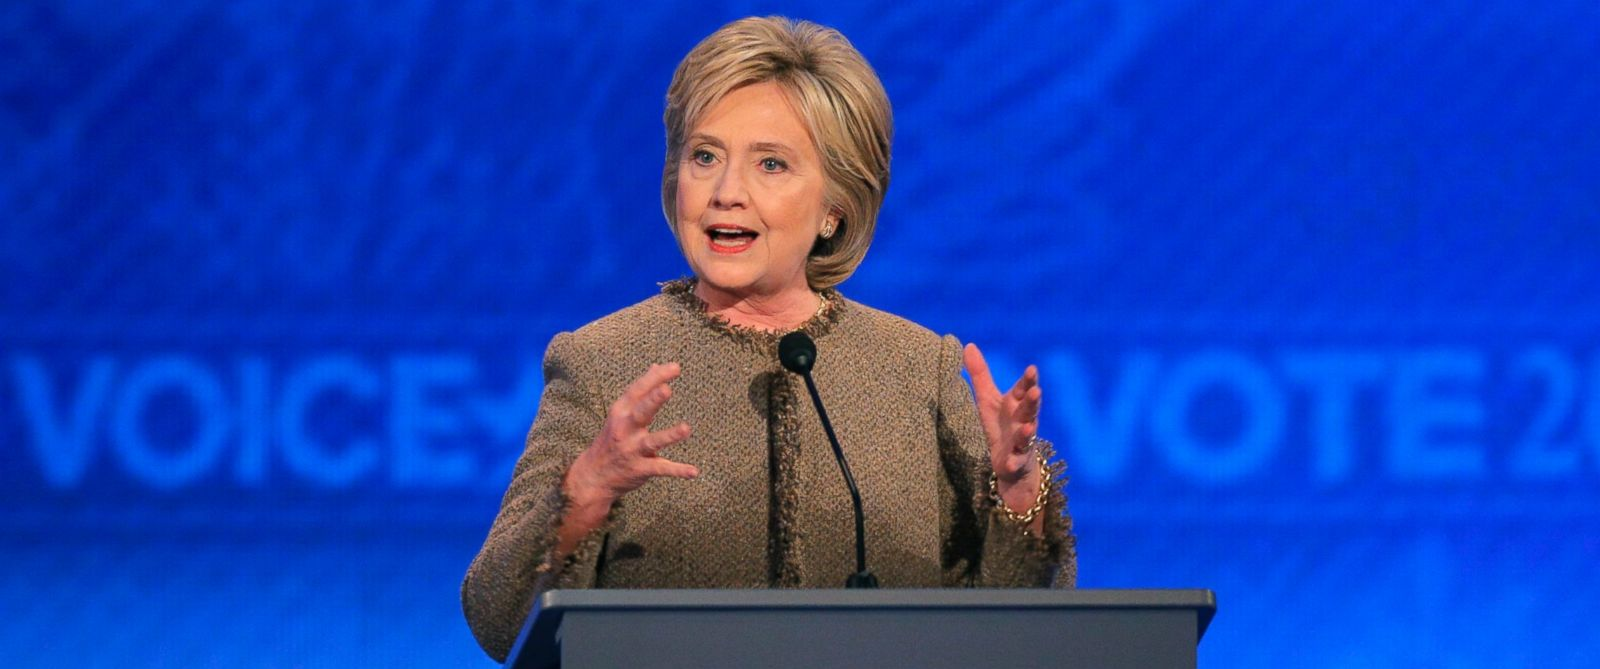 PHOTO: Hillary Clinton answers a question at the Democratic presidential candidates debate at St. Anselm College in Manchester, N.H., Dec. 19, 2015.